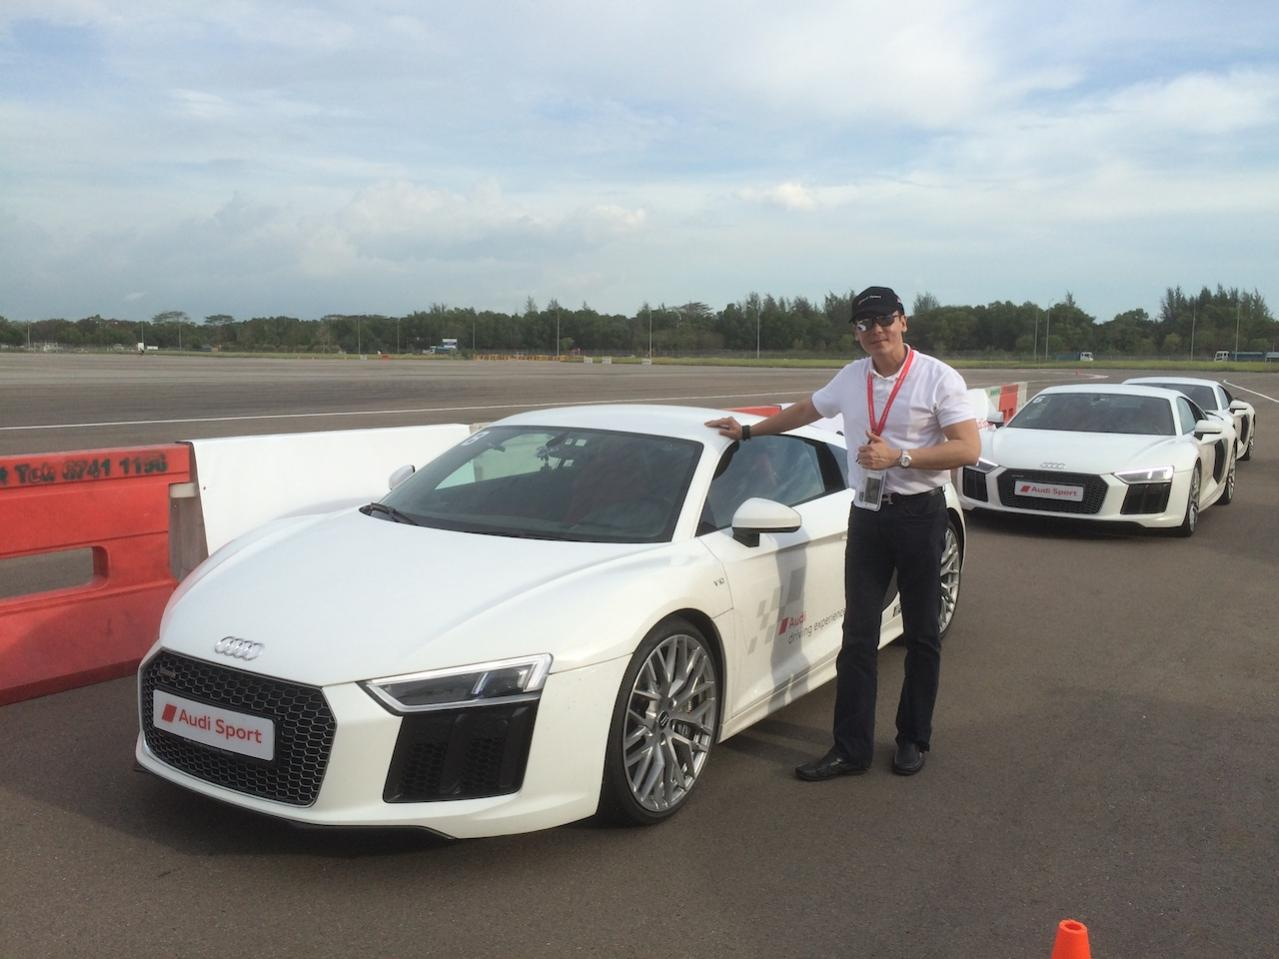 Owners photo with their R8.-howier8.jpg